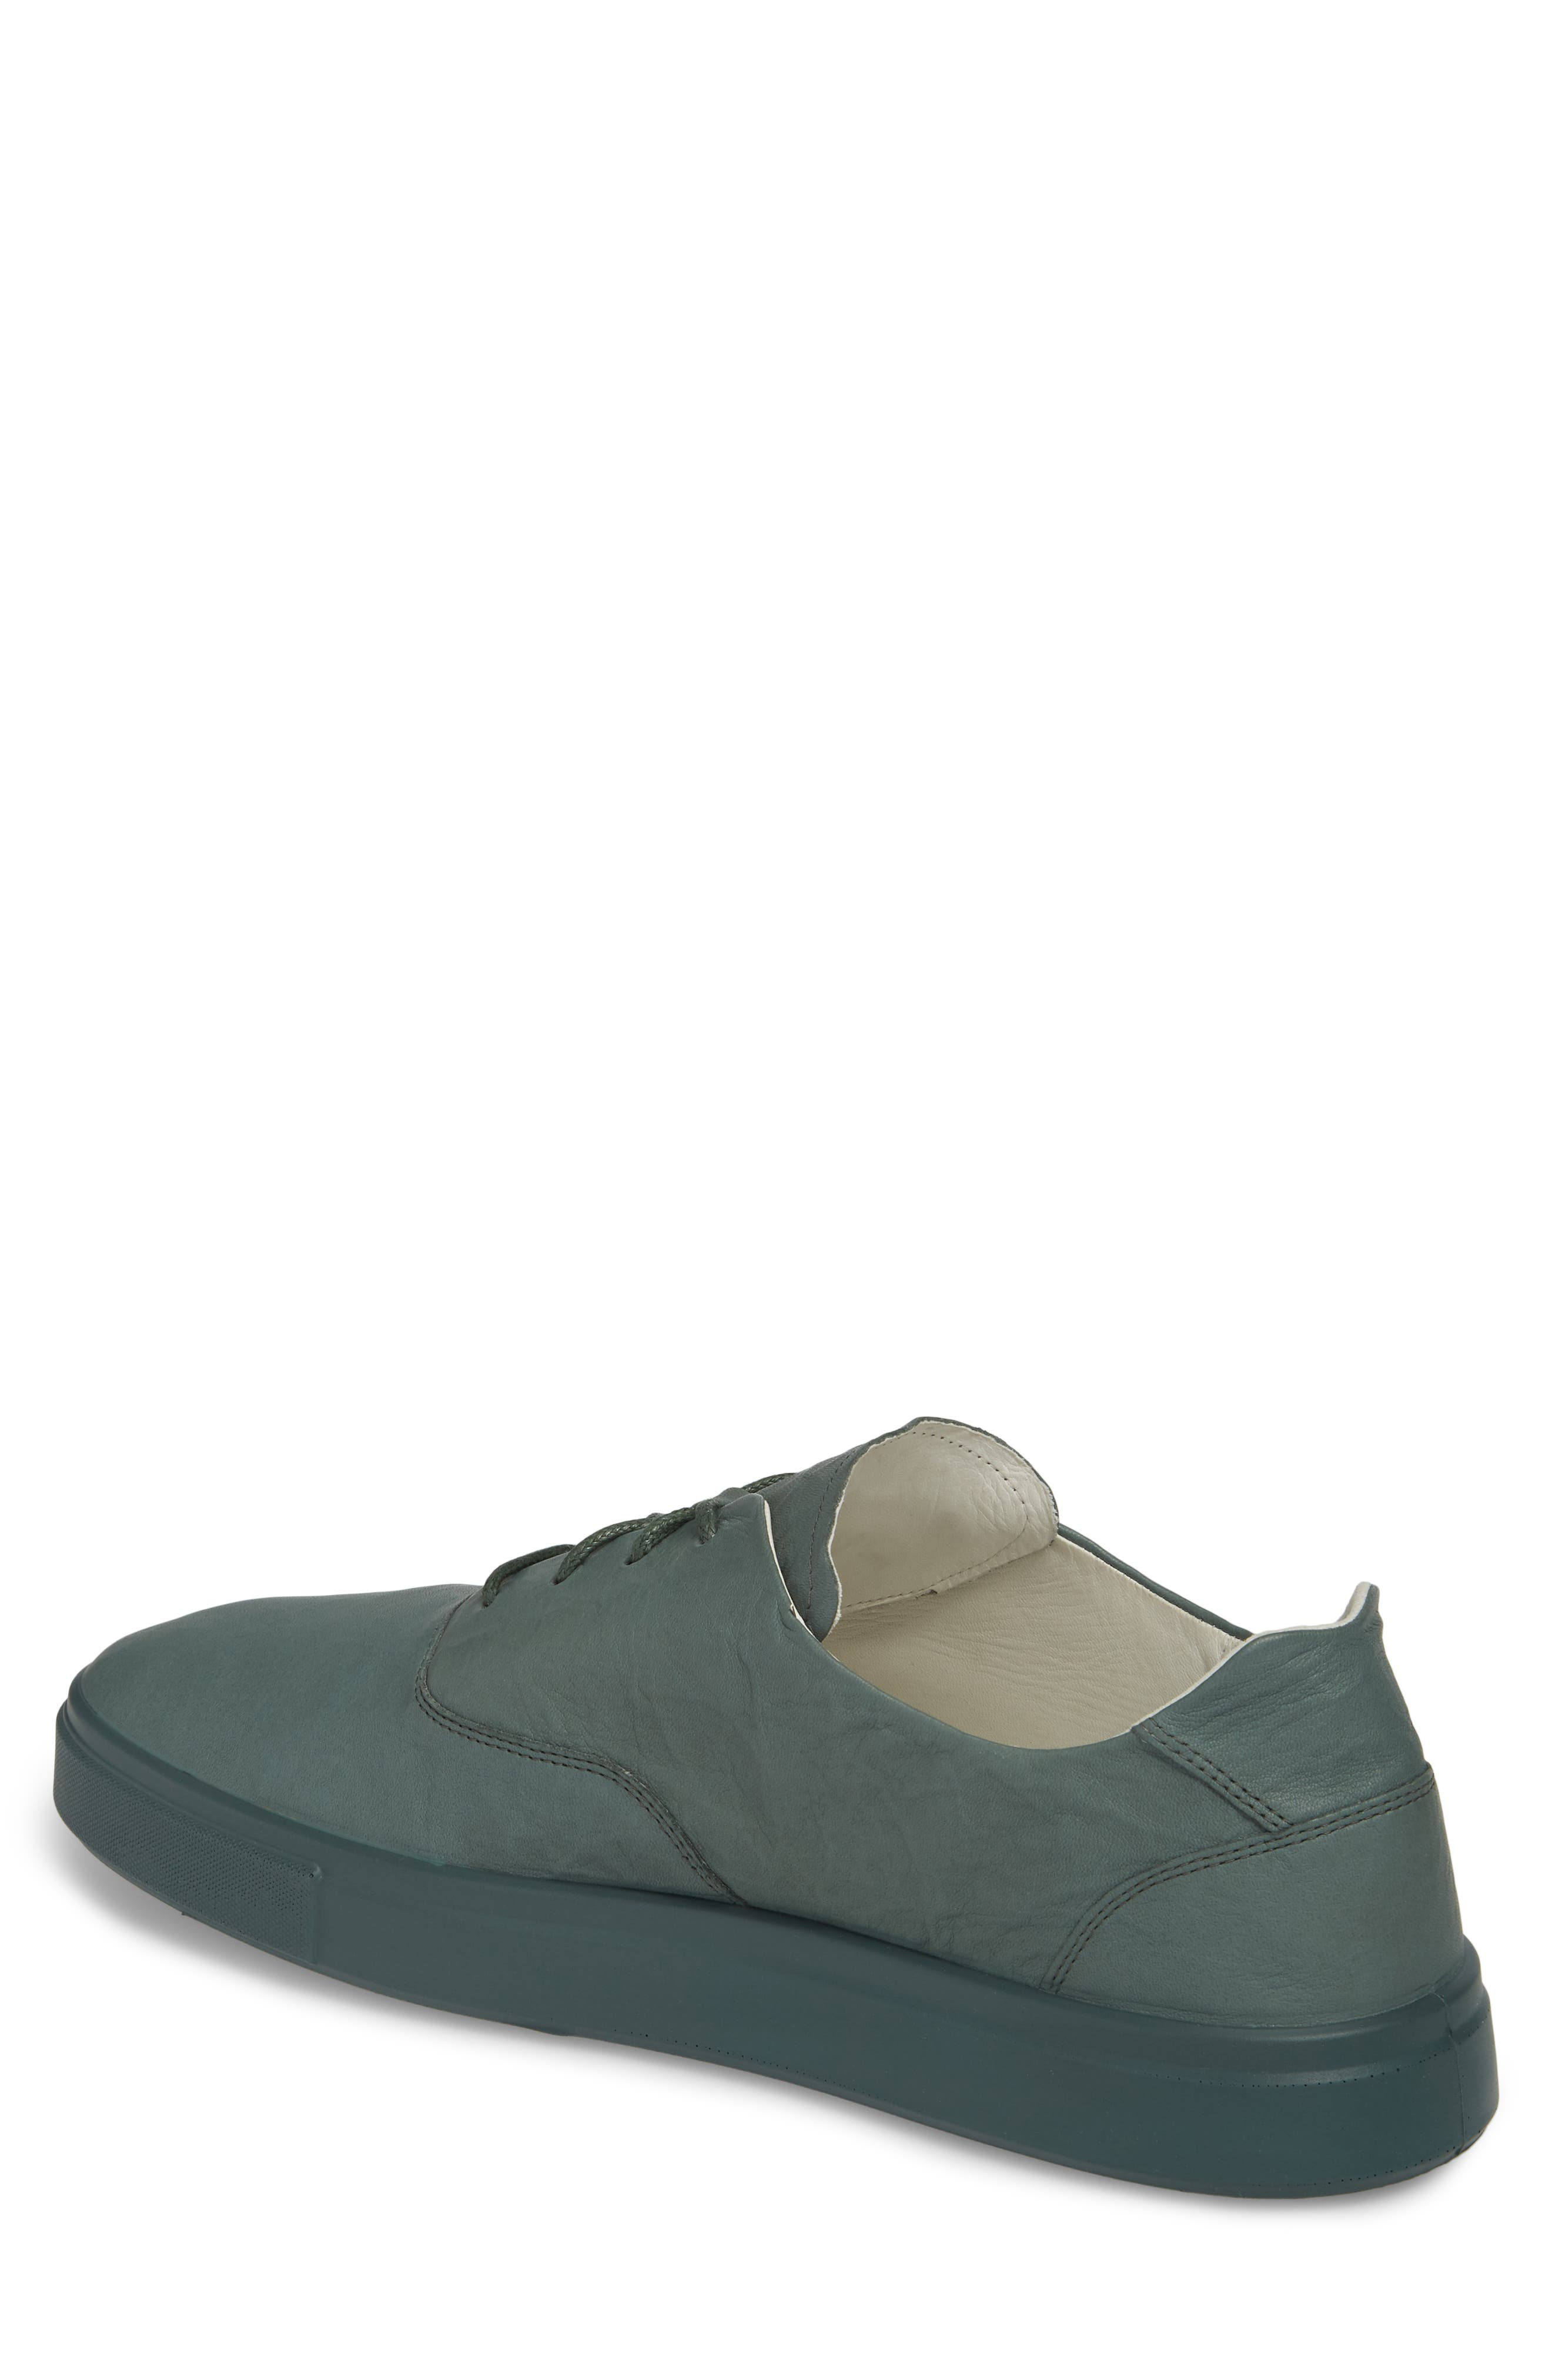 Kyle Low Top Sneaker,                             Alternate thumbnail 2, color,                             Military Sage Leather